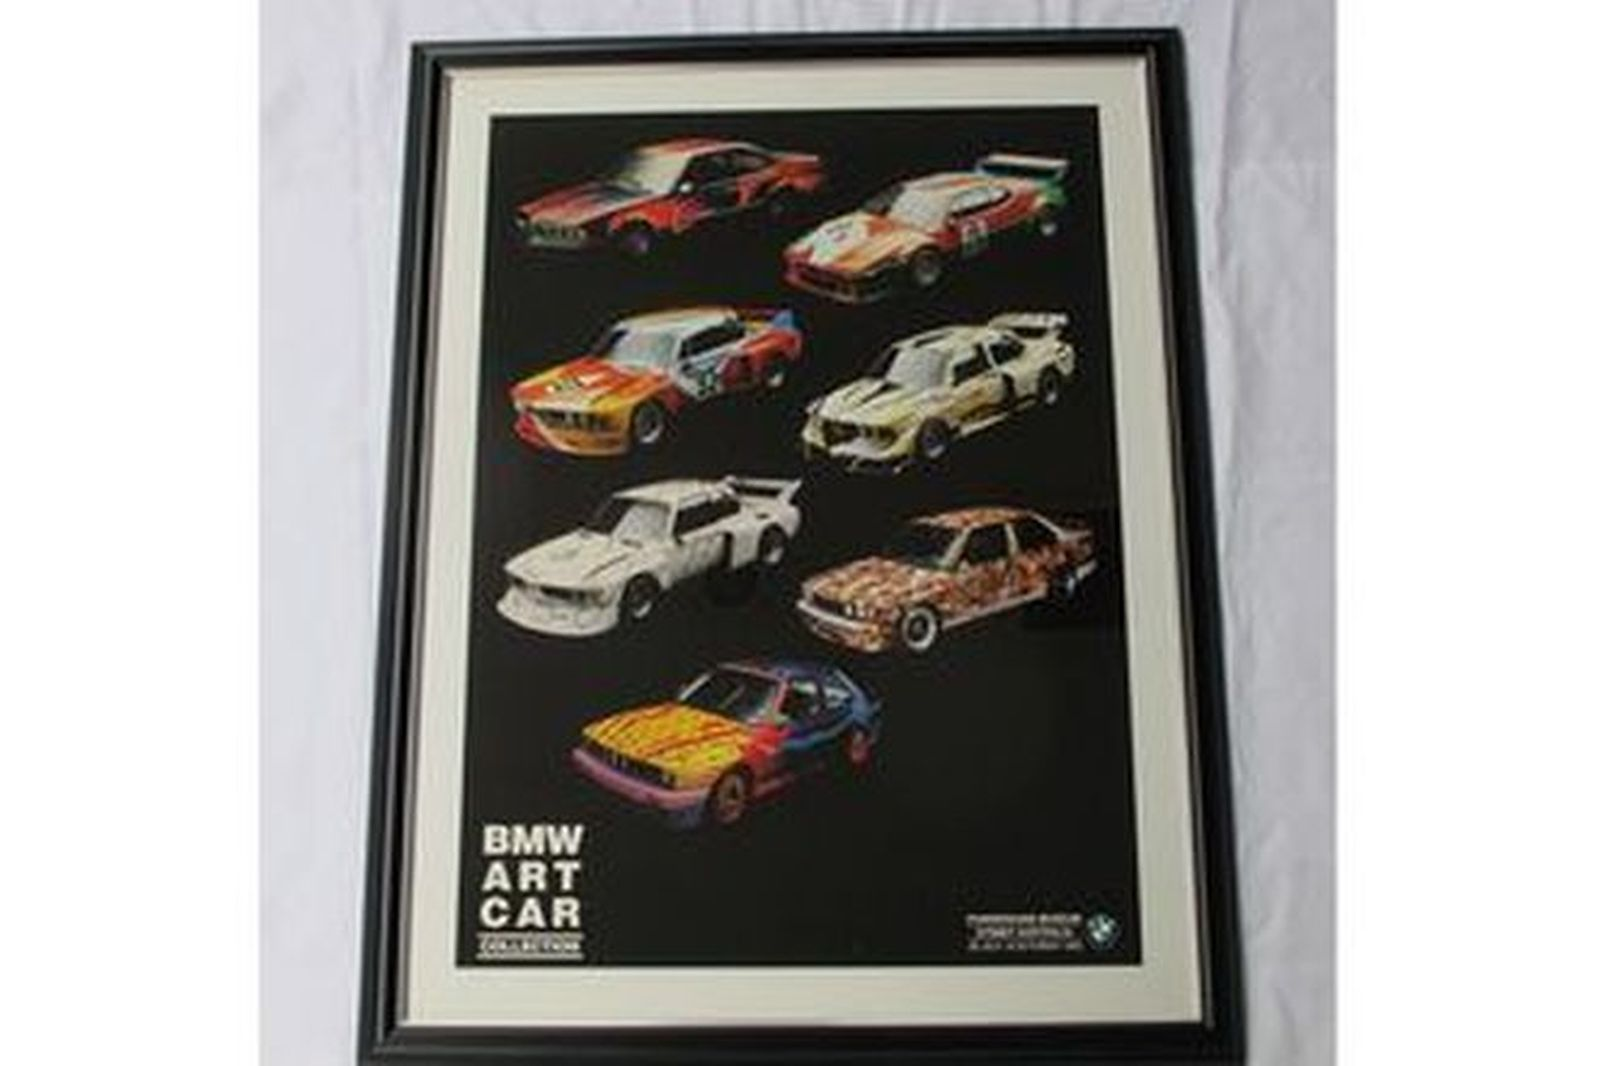 Charity Lot - 8 x Framed Posters - BMW Art Car Collection